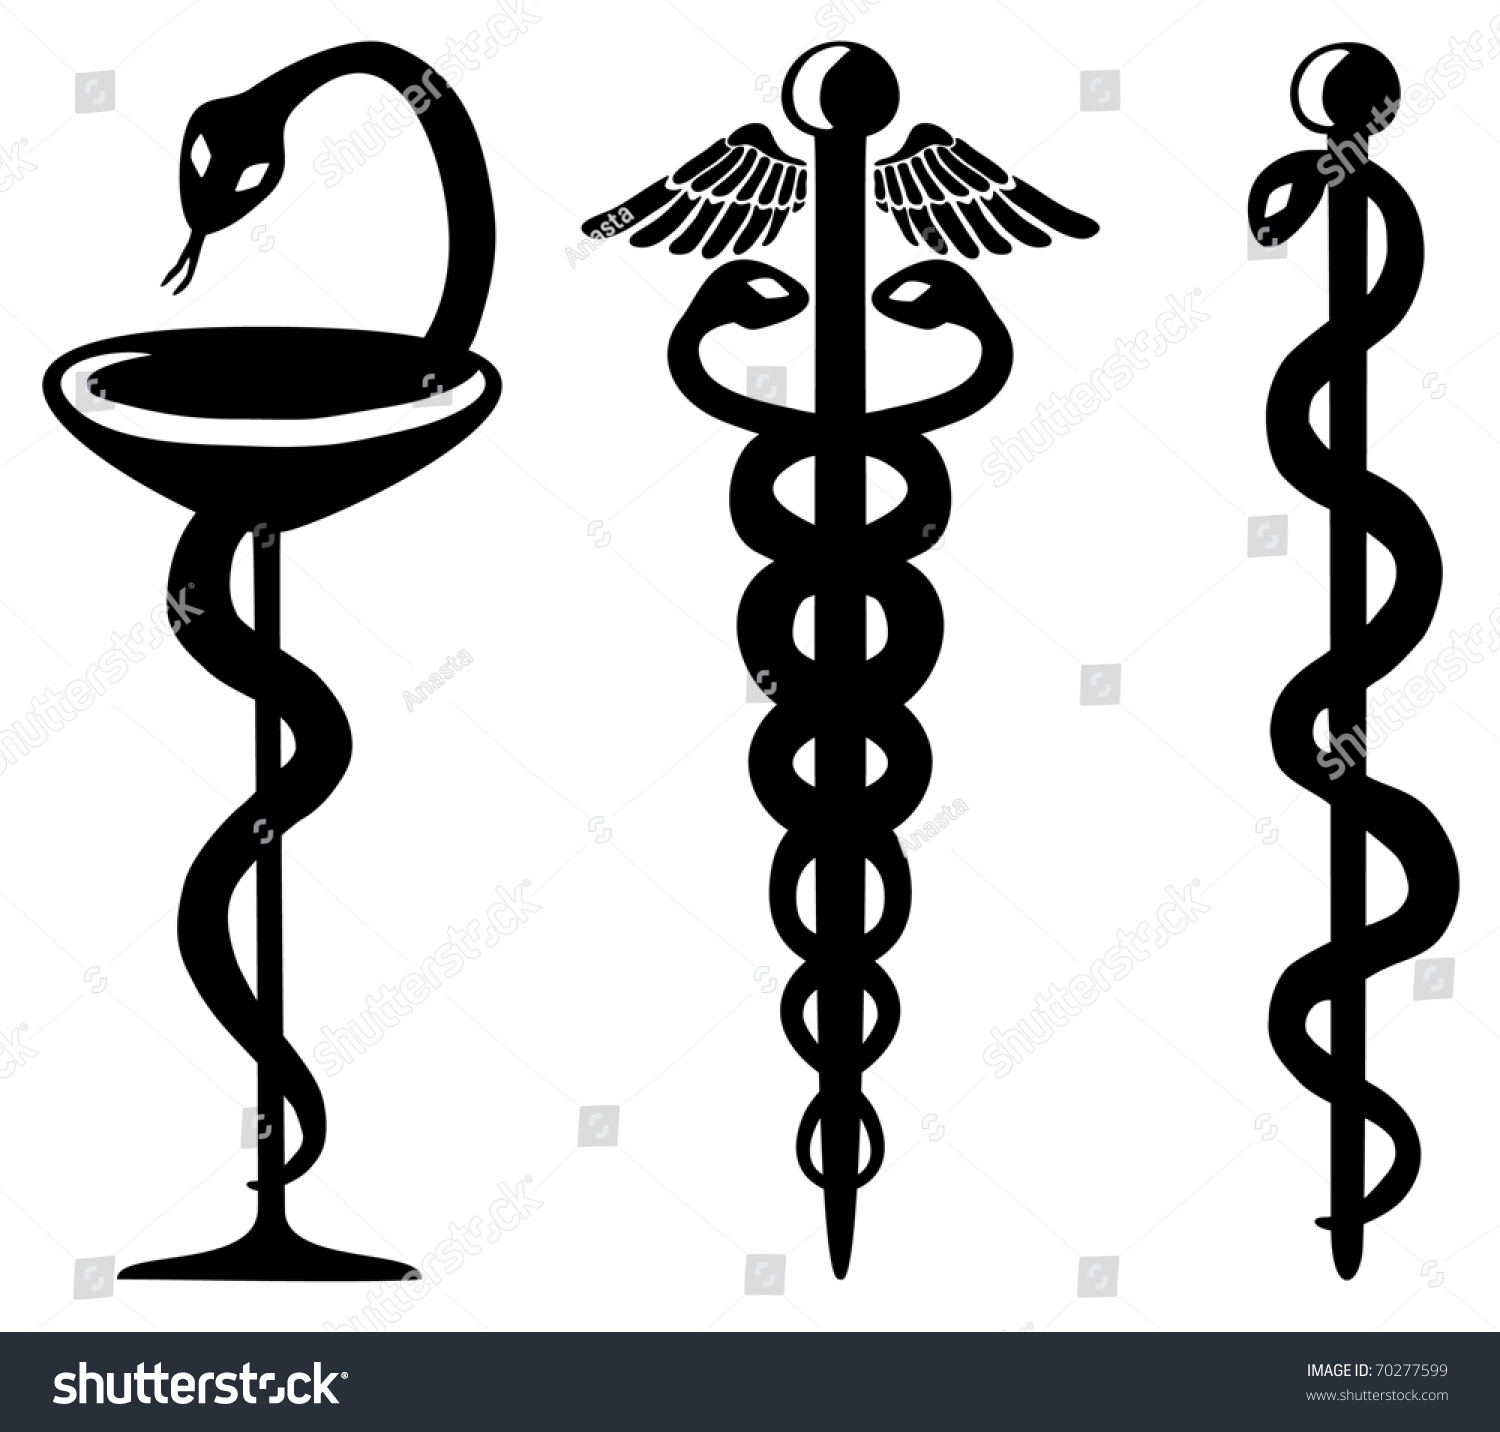 Royalty Free Snake And Cup Caduceus And Staff Of 70277599 Stock